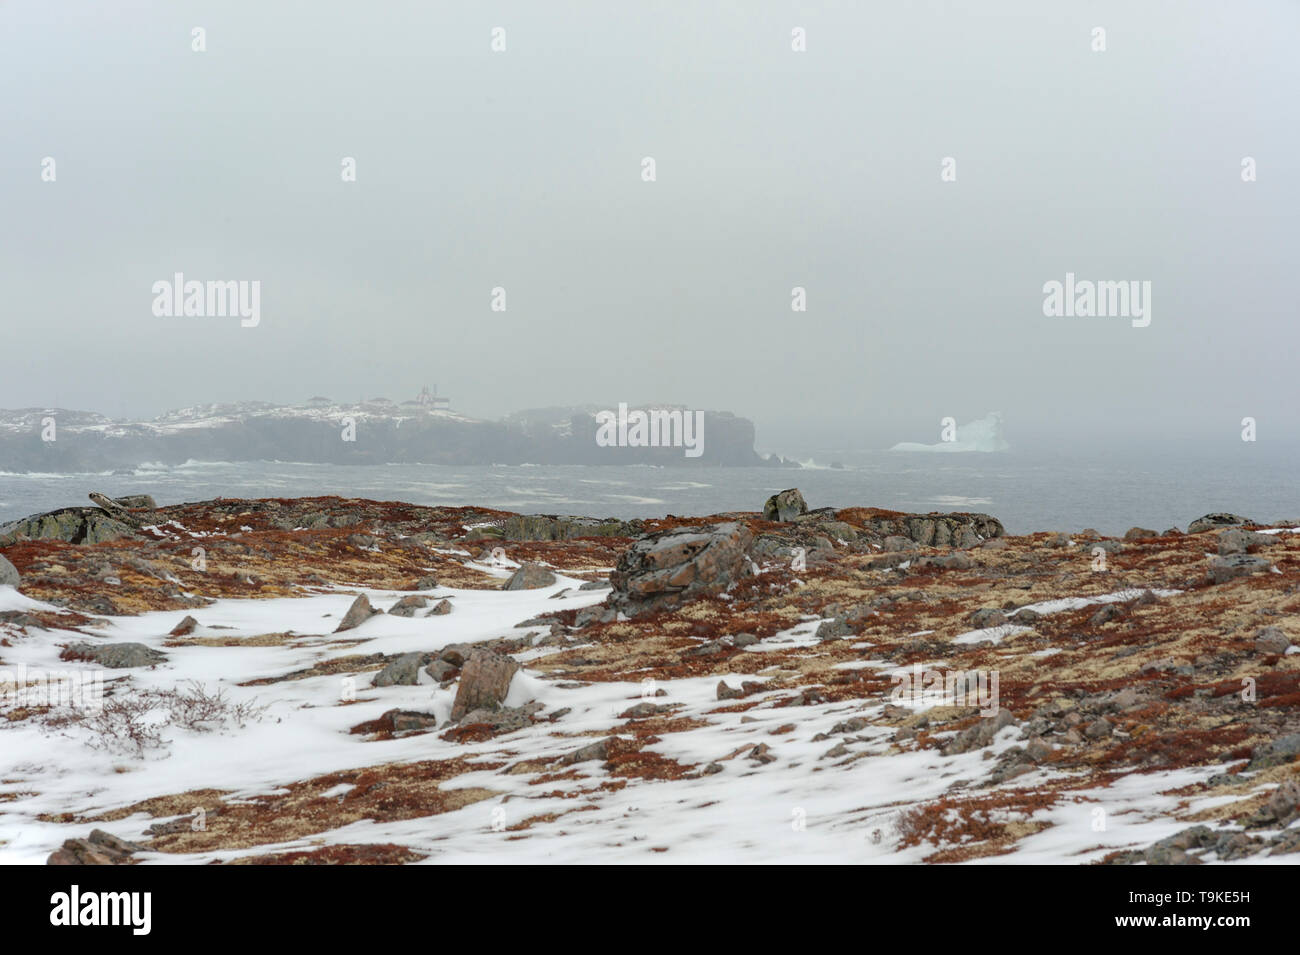 Ice berg and lighthouse in fog - Stock Image